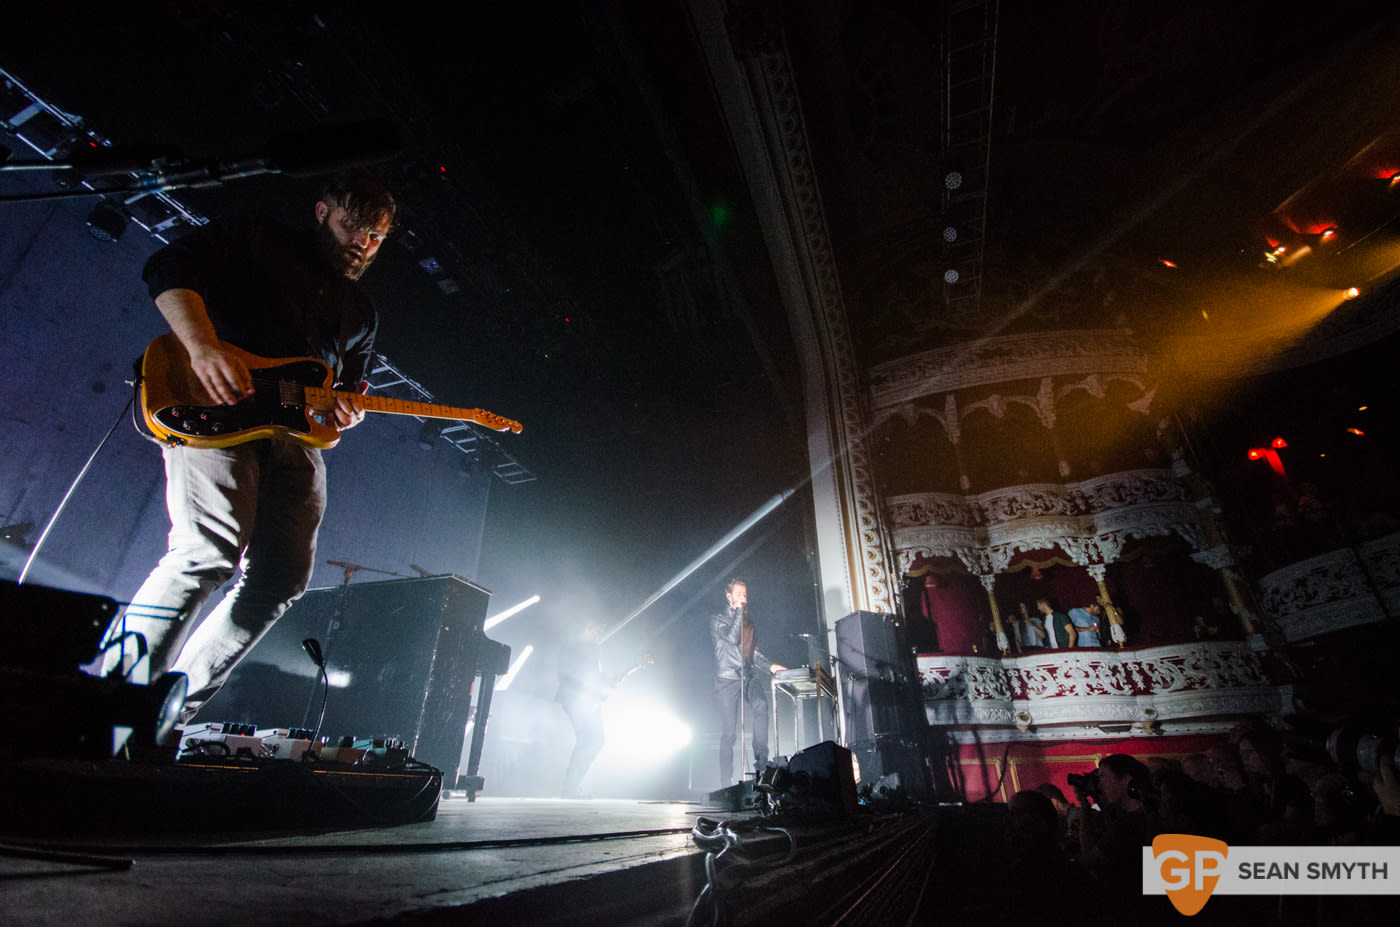 editors-at-the-olympia-theatre-by-sean-smyth-10-10-15-27-of-28_21467587874_o